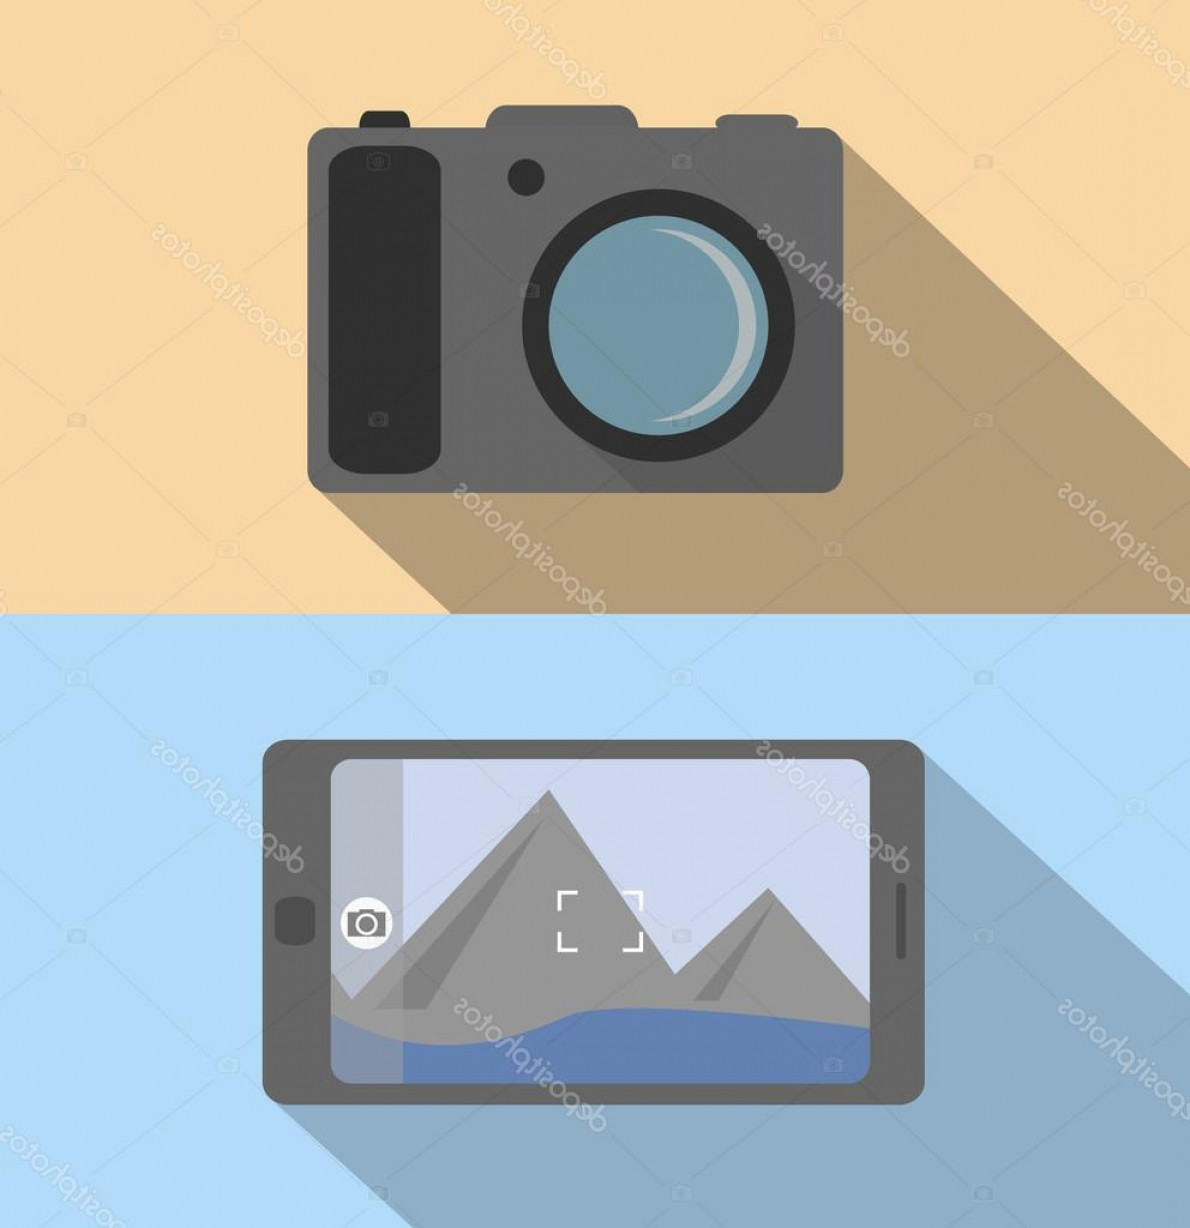 Hires Camera Lens Vector: Stock Illustration Flat Concept Camera And Mobile